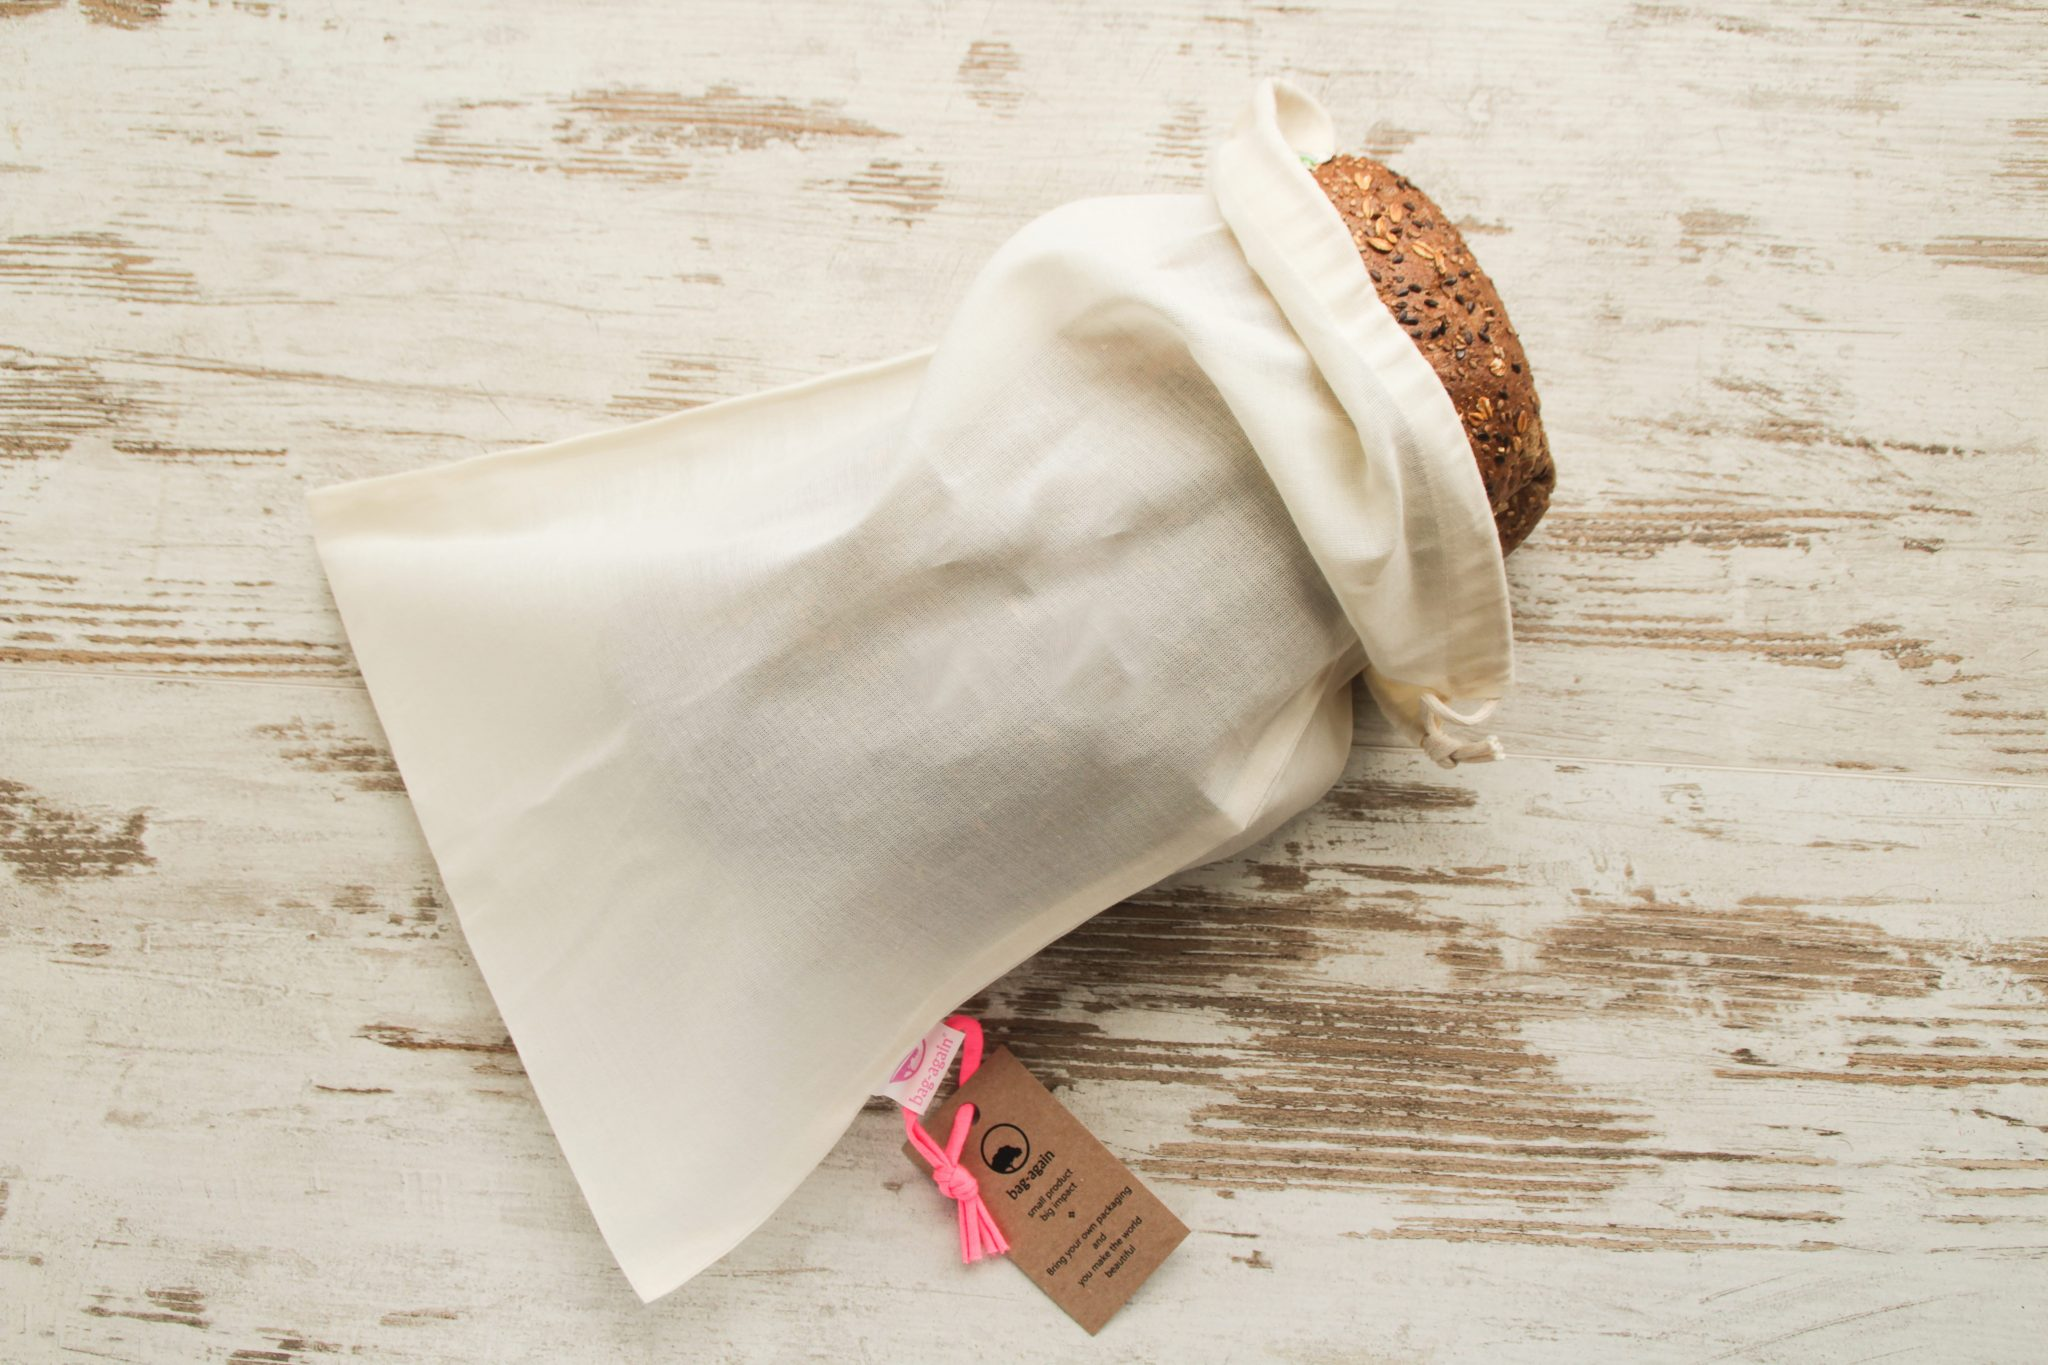 breadbag L, broodzak L, organic cotton, biologisch katoen, bag-again, zero waste, zero waste webshop